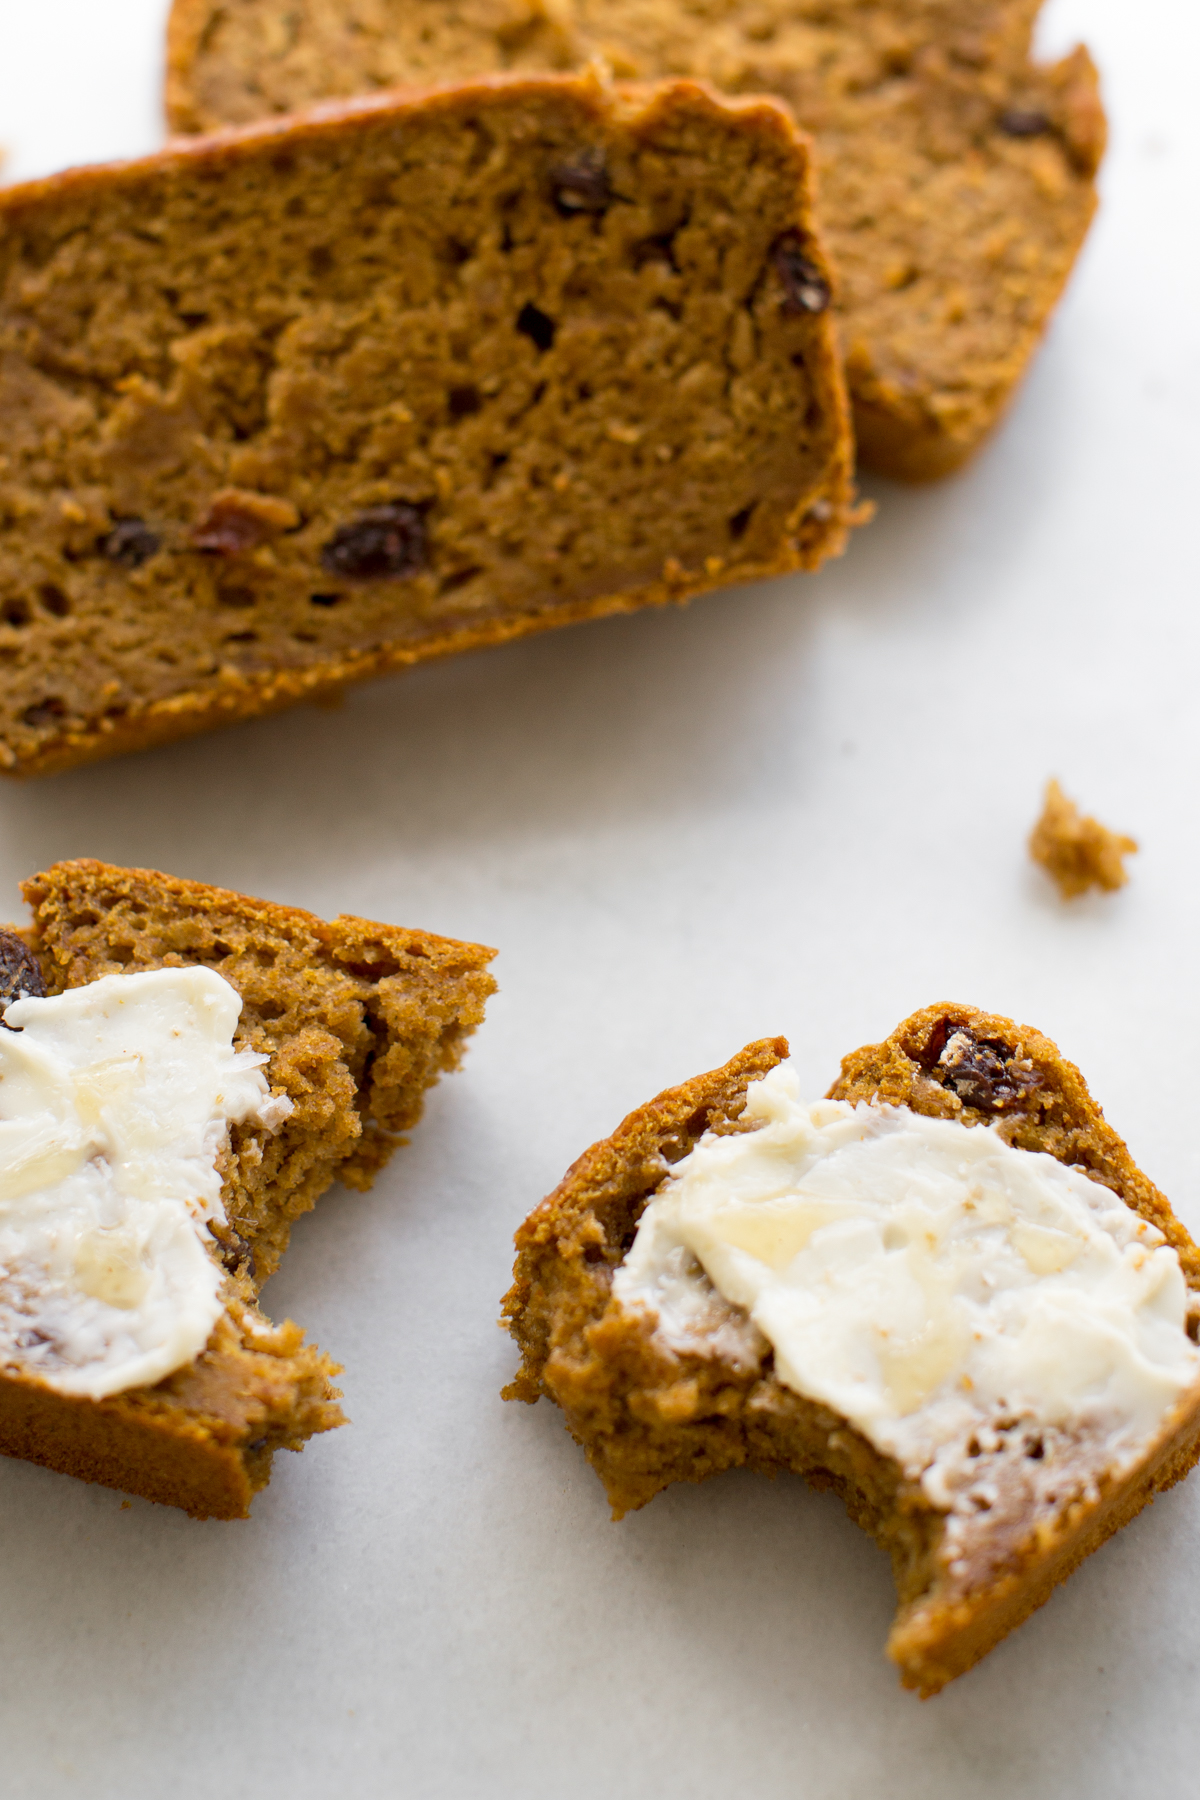 Closeup of a slice of pumpkin bread smeared with butter and a drizzle of honey on a marble background